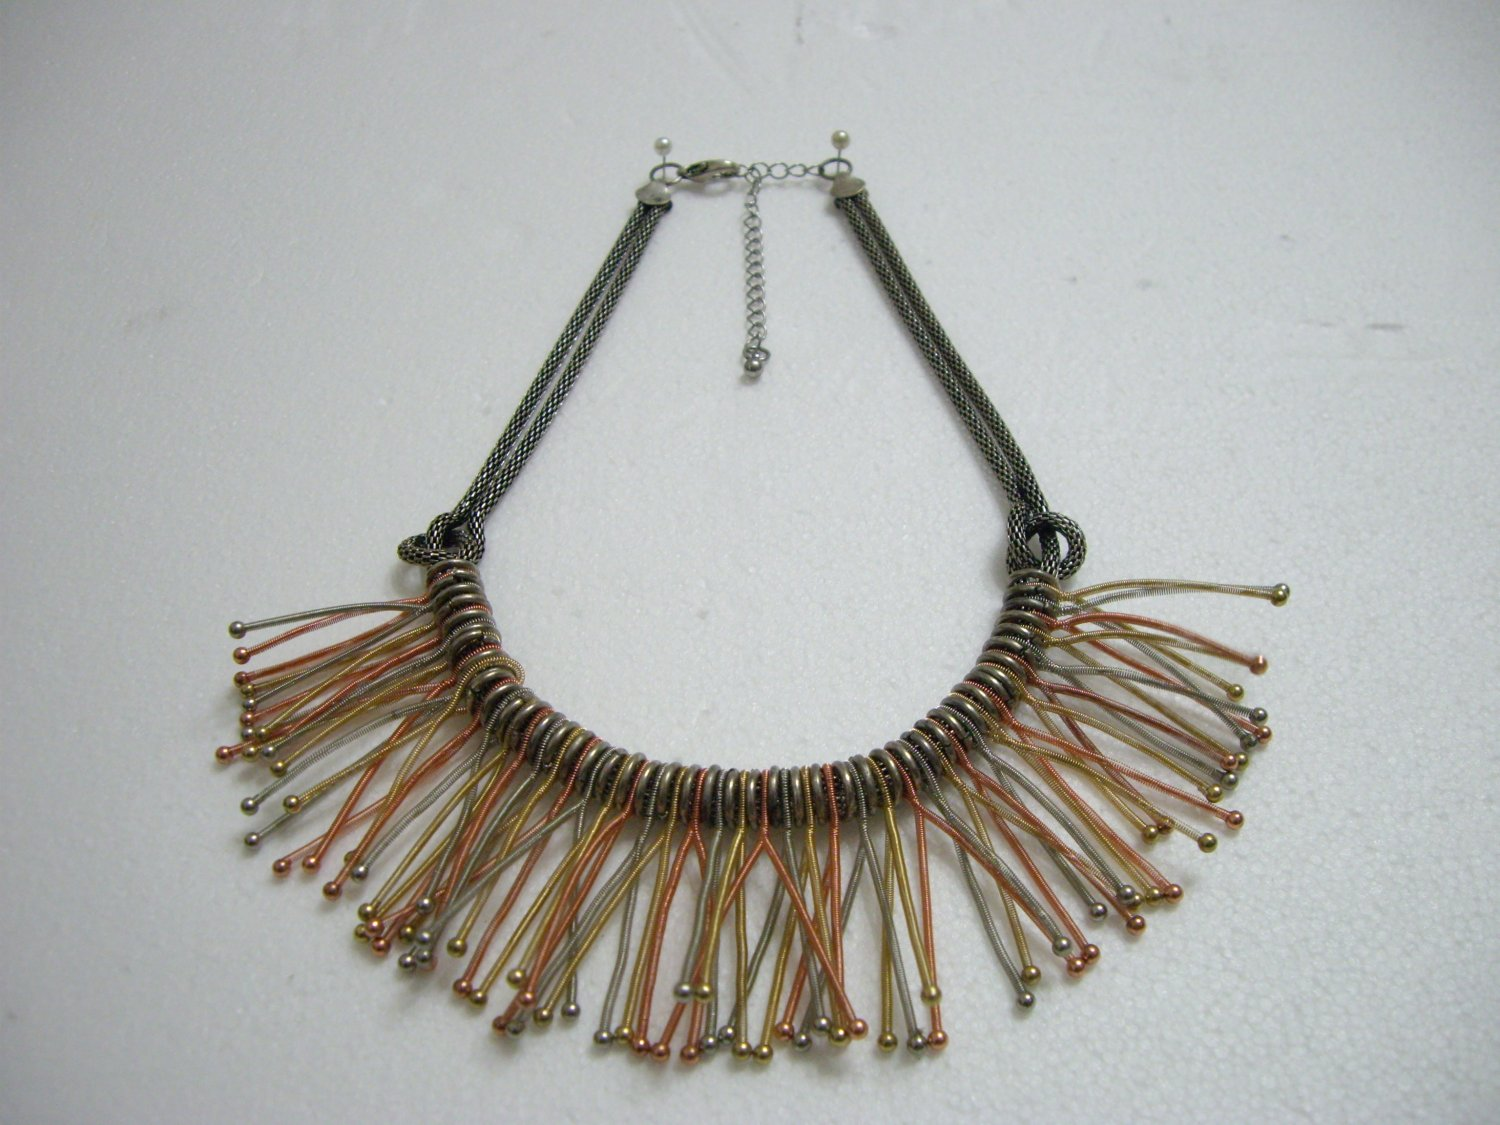 Stylish Silver Grey Chain with Multi-Colour Springs Pendant Necklace